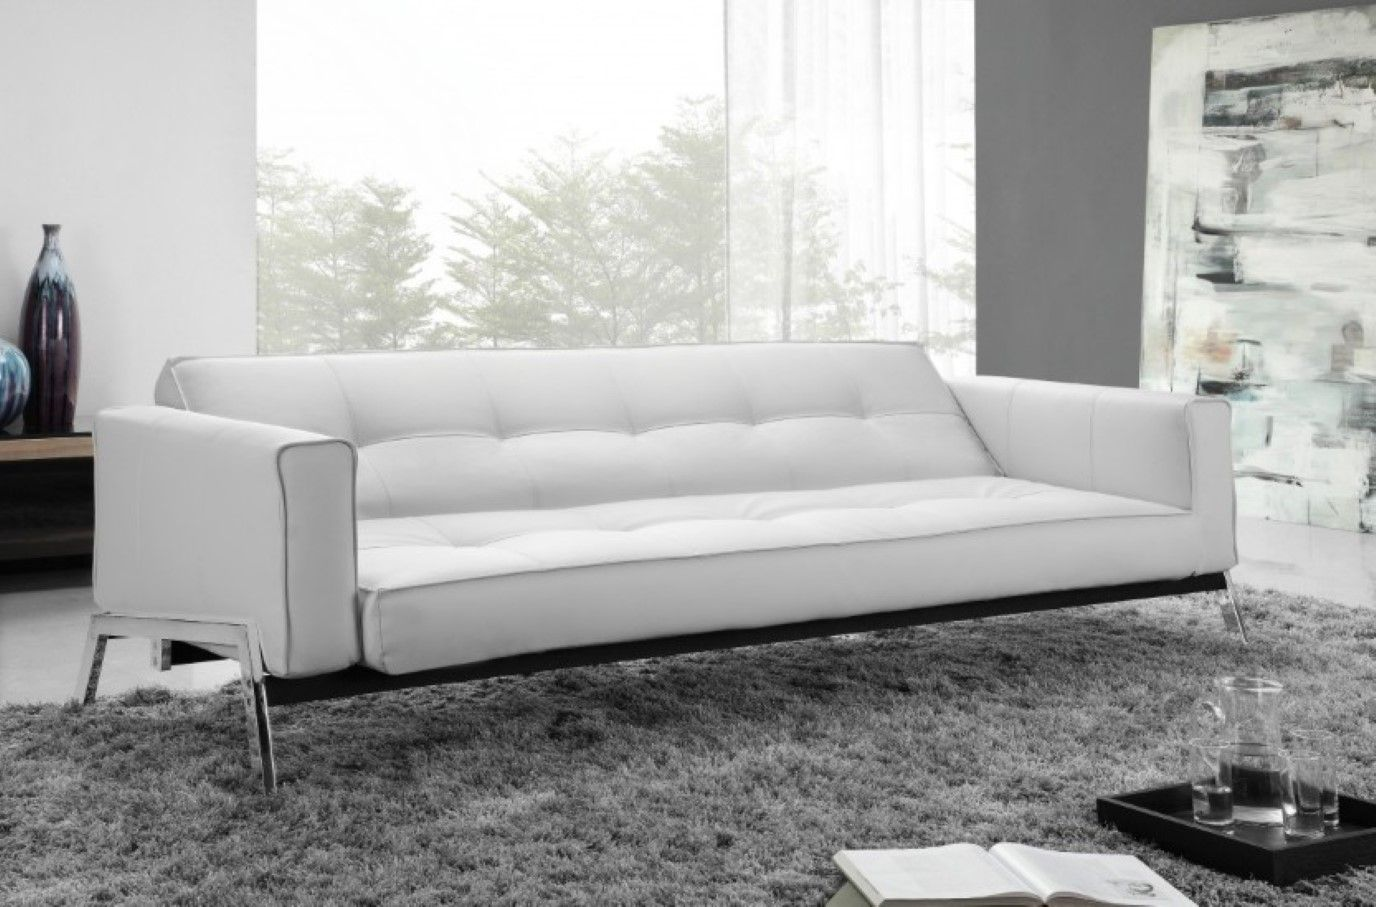 Pin by Syred Net on Office Sofa | Leather sofa bed, White sofa bed ...